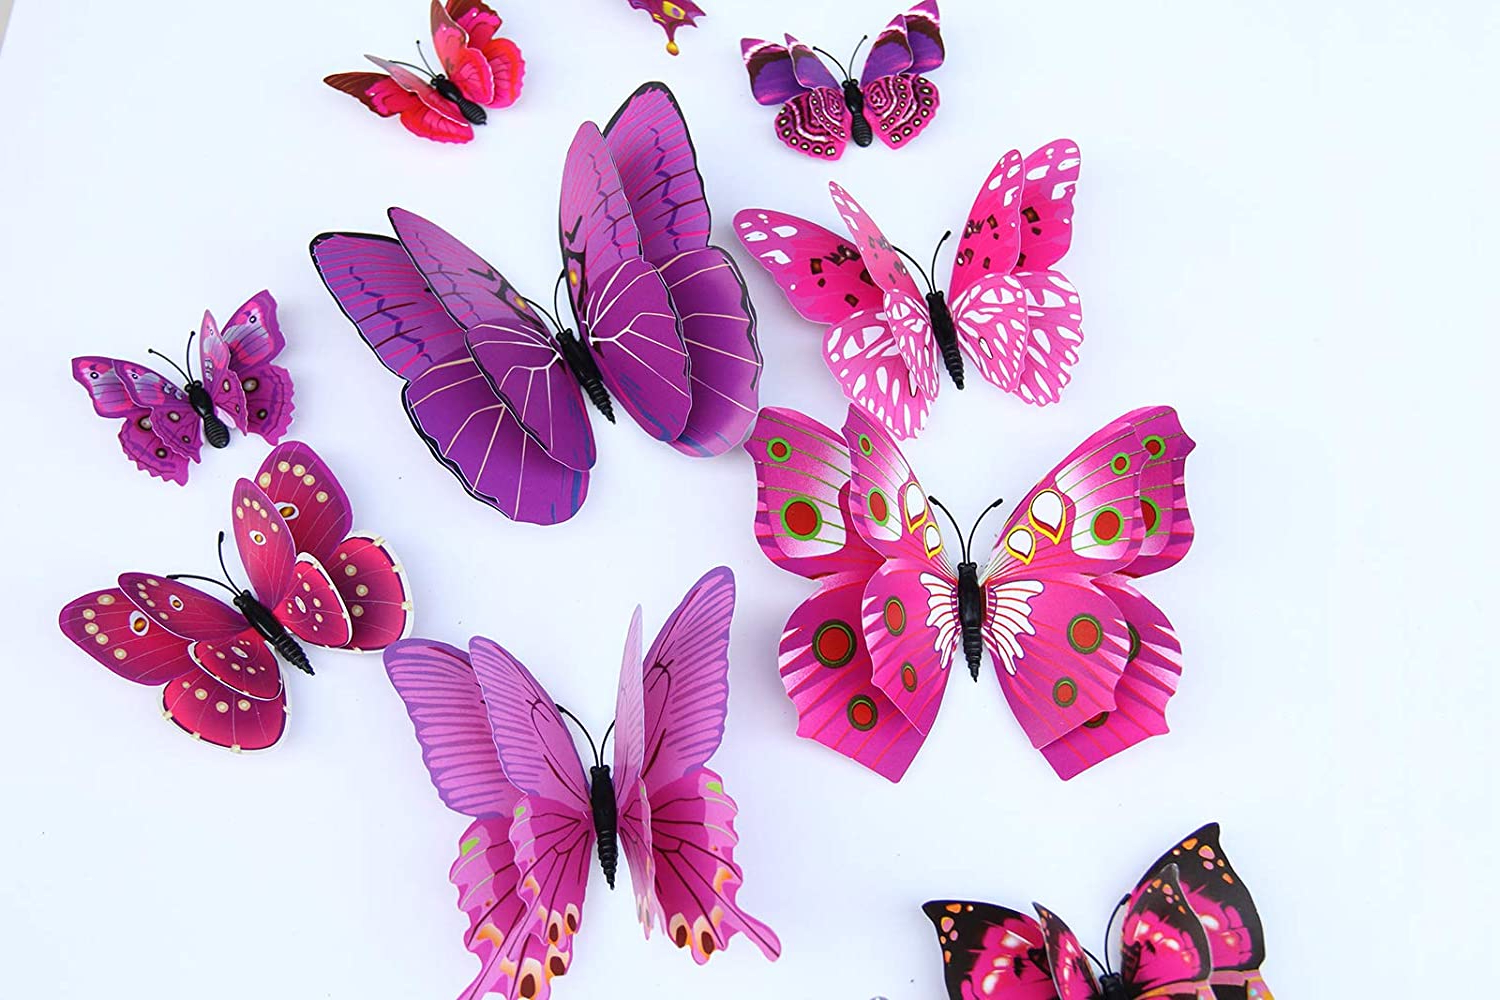 Multicolored Butterfly Bouquet Wall Décor Within Favorite Zhuopin 24pcs Wall Sticker Decals,3d Butterfly Wall Sticker (View 9 of 20)